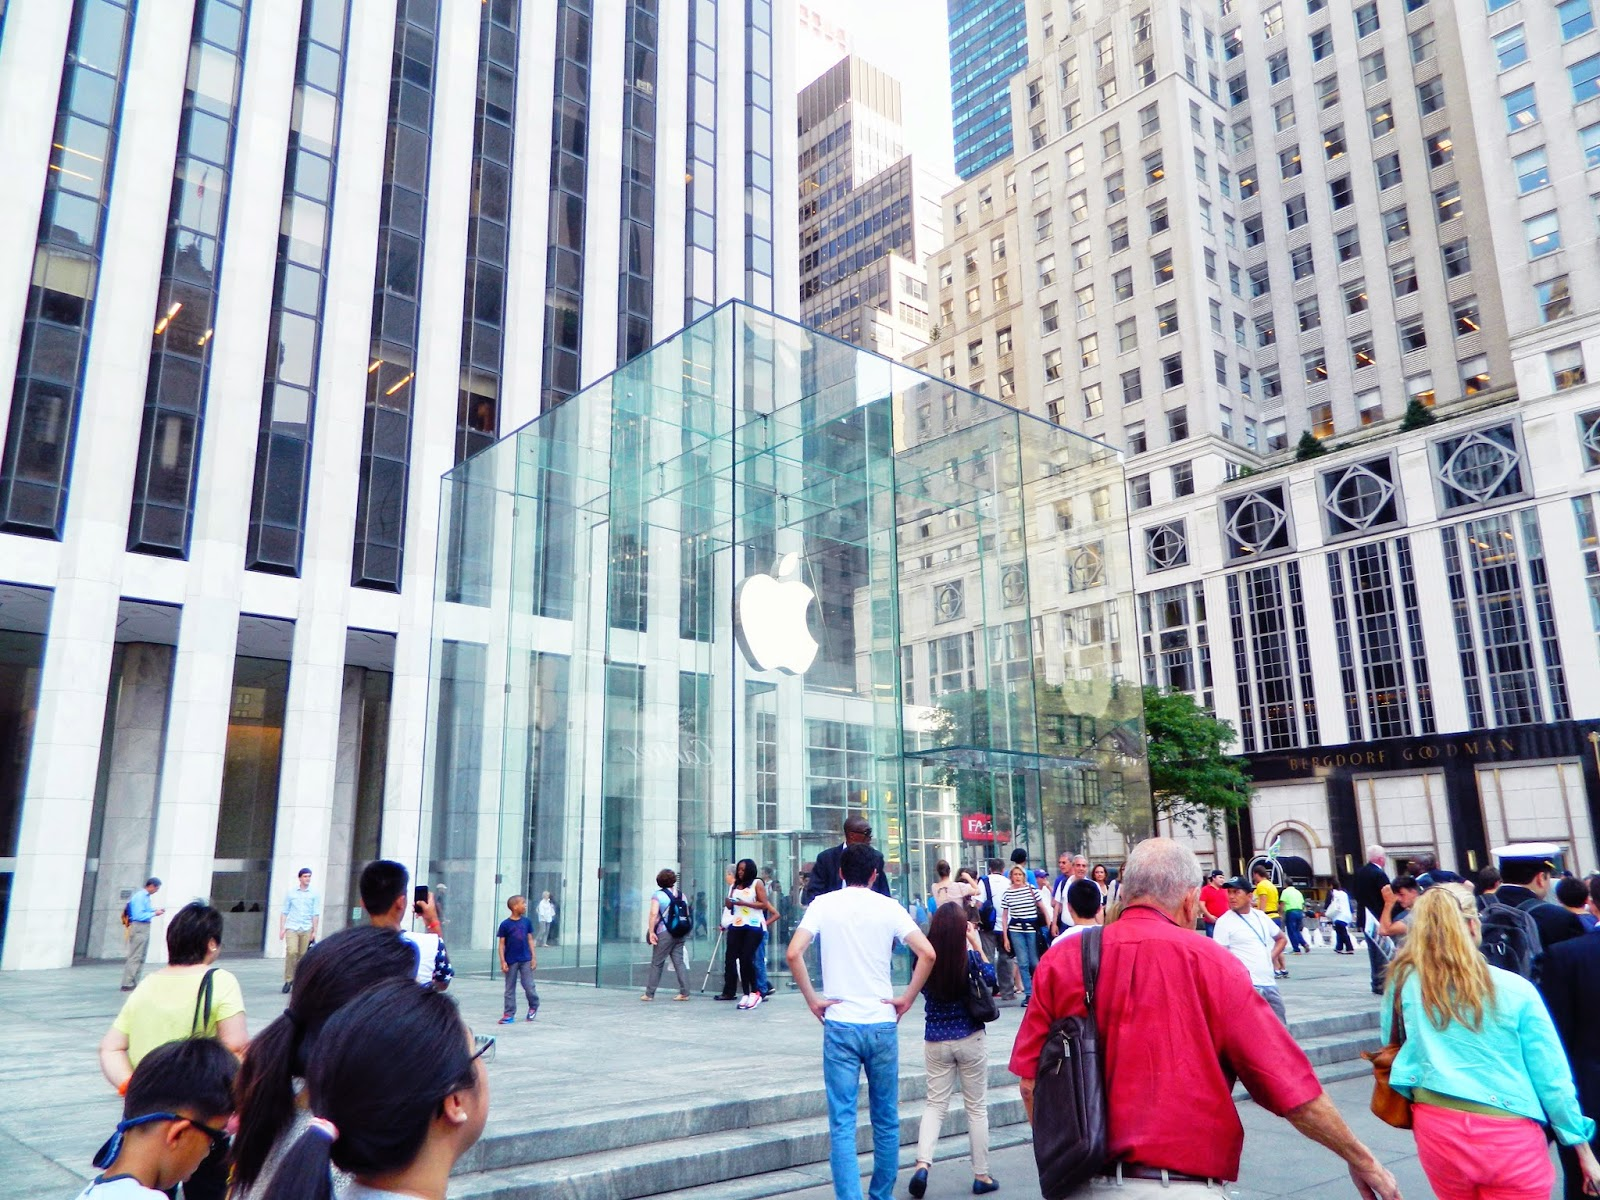 new york city 5th avenue apple cube glass architecture